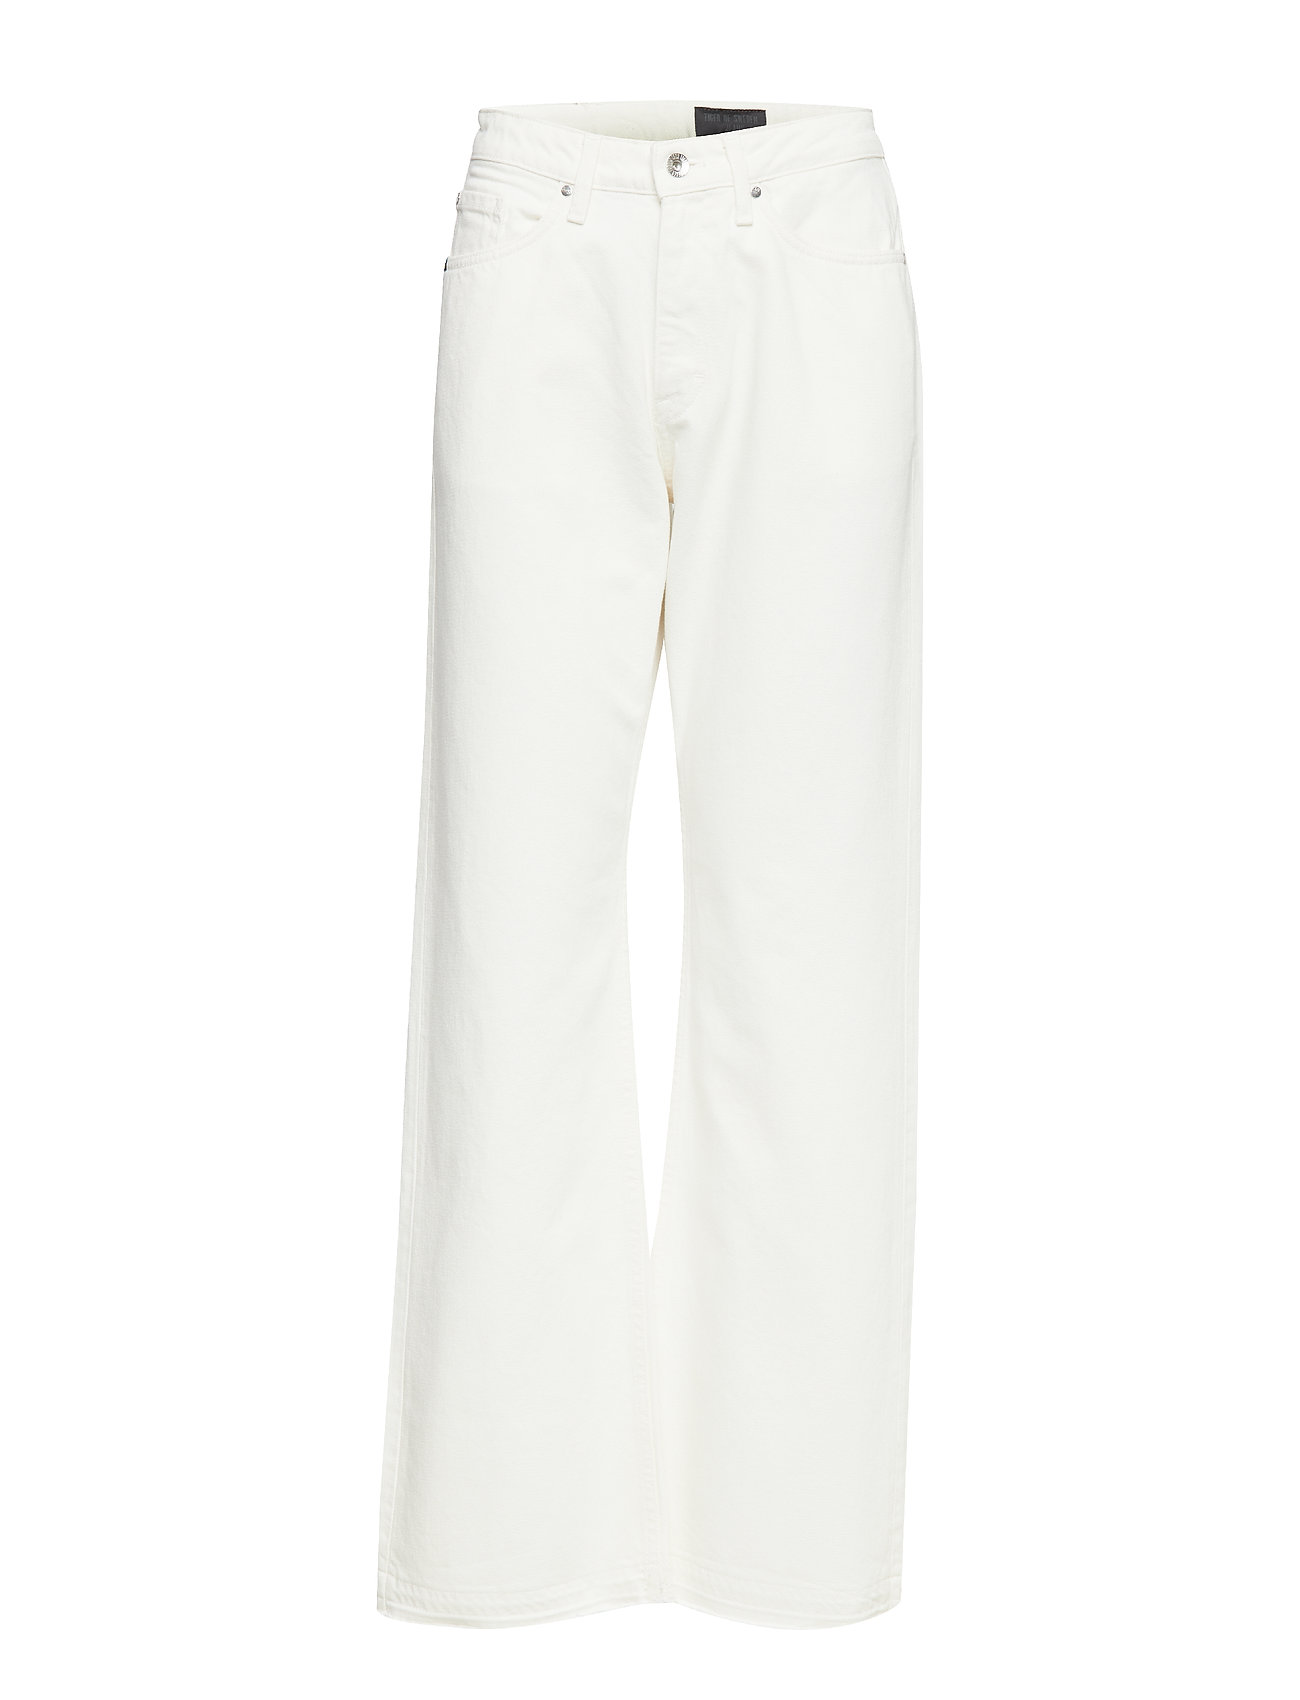 Tiger of Sweden Jeans LOOSE - WHITE